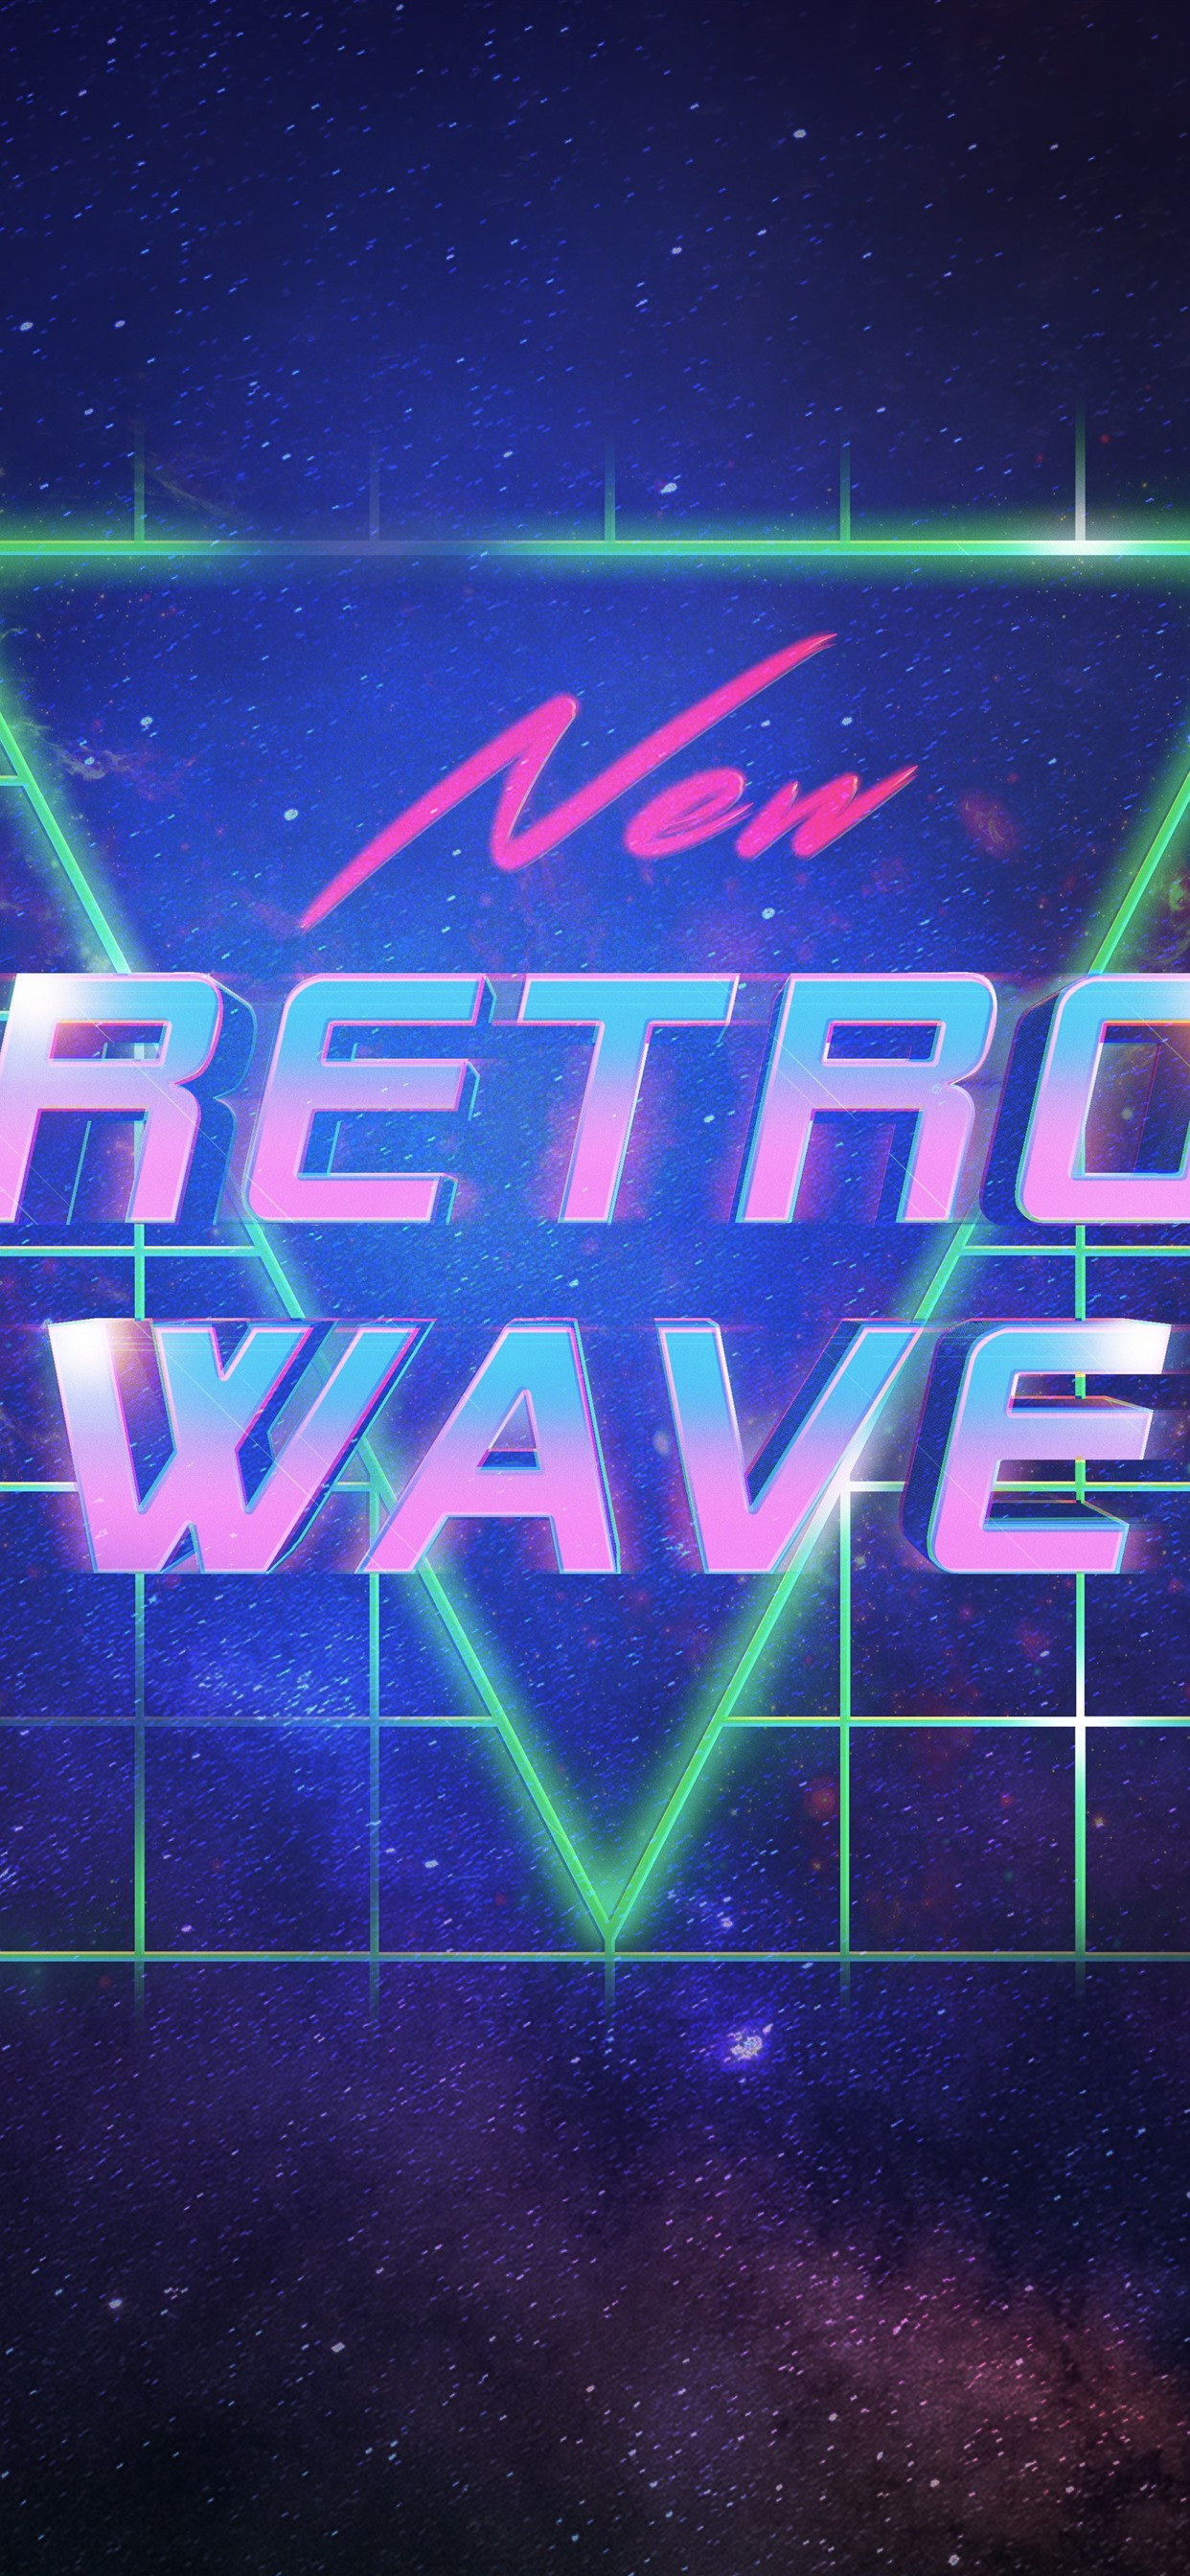 Wallpaper New Retro Wave Synth Pop 5120x2880 Uhd 5k Picture